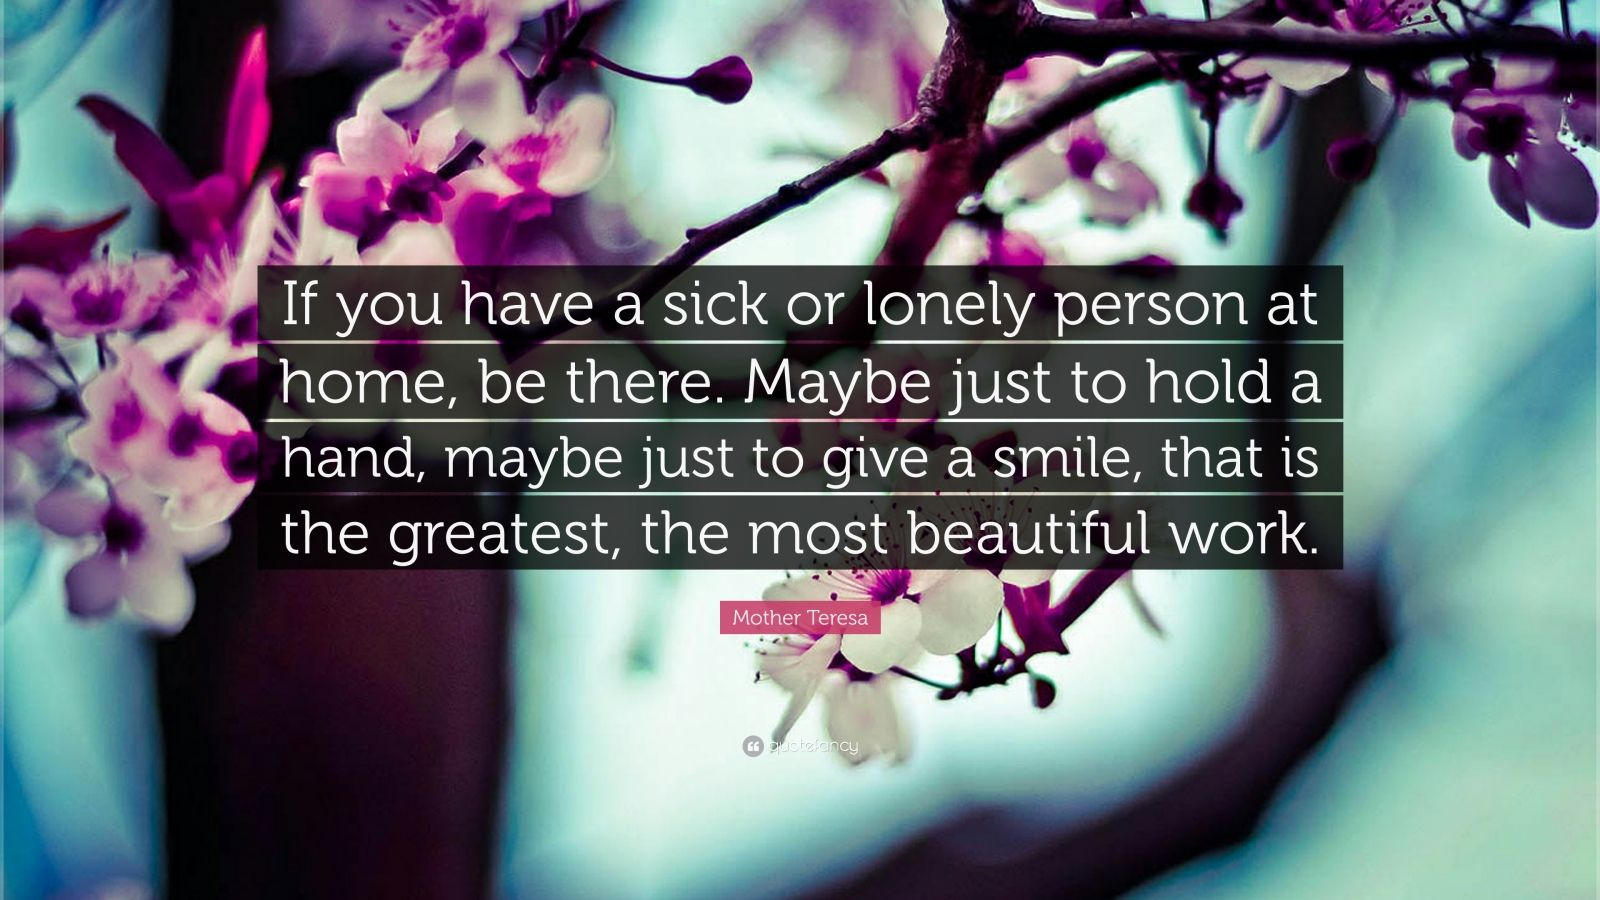 """Mother Teresa Quote: """"If you have a sick or lonely person at home, be there. Maybe just to hold a hand, maybe just to give a smile, that is the greatest, the most beautiful work."""""""